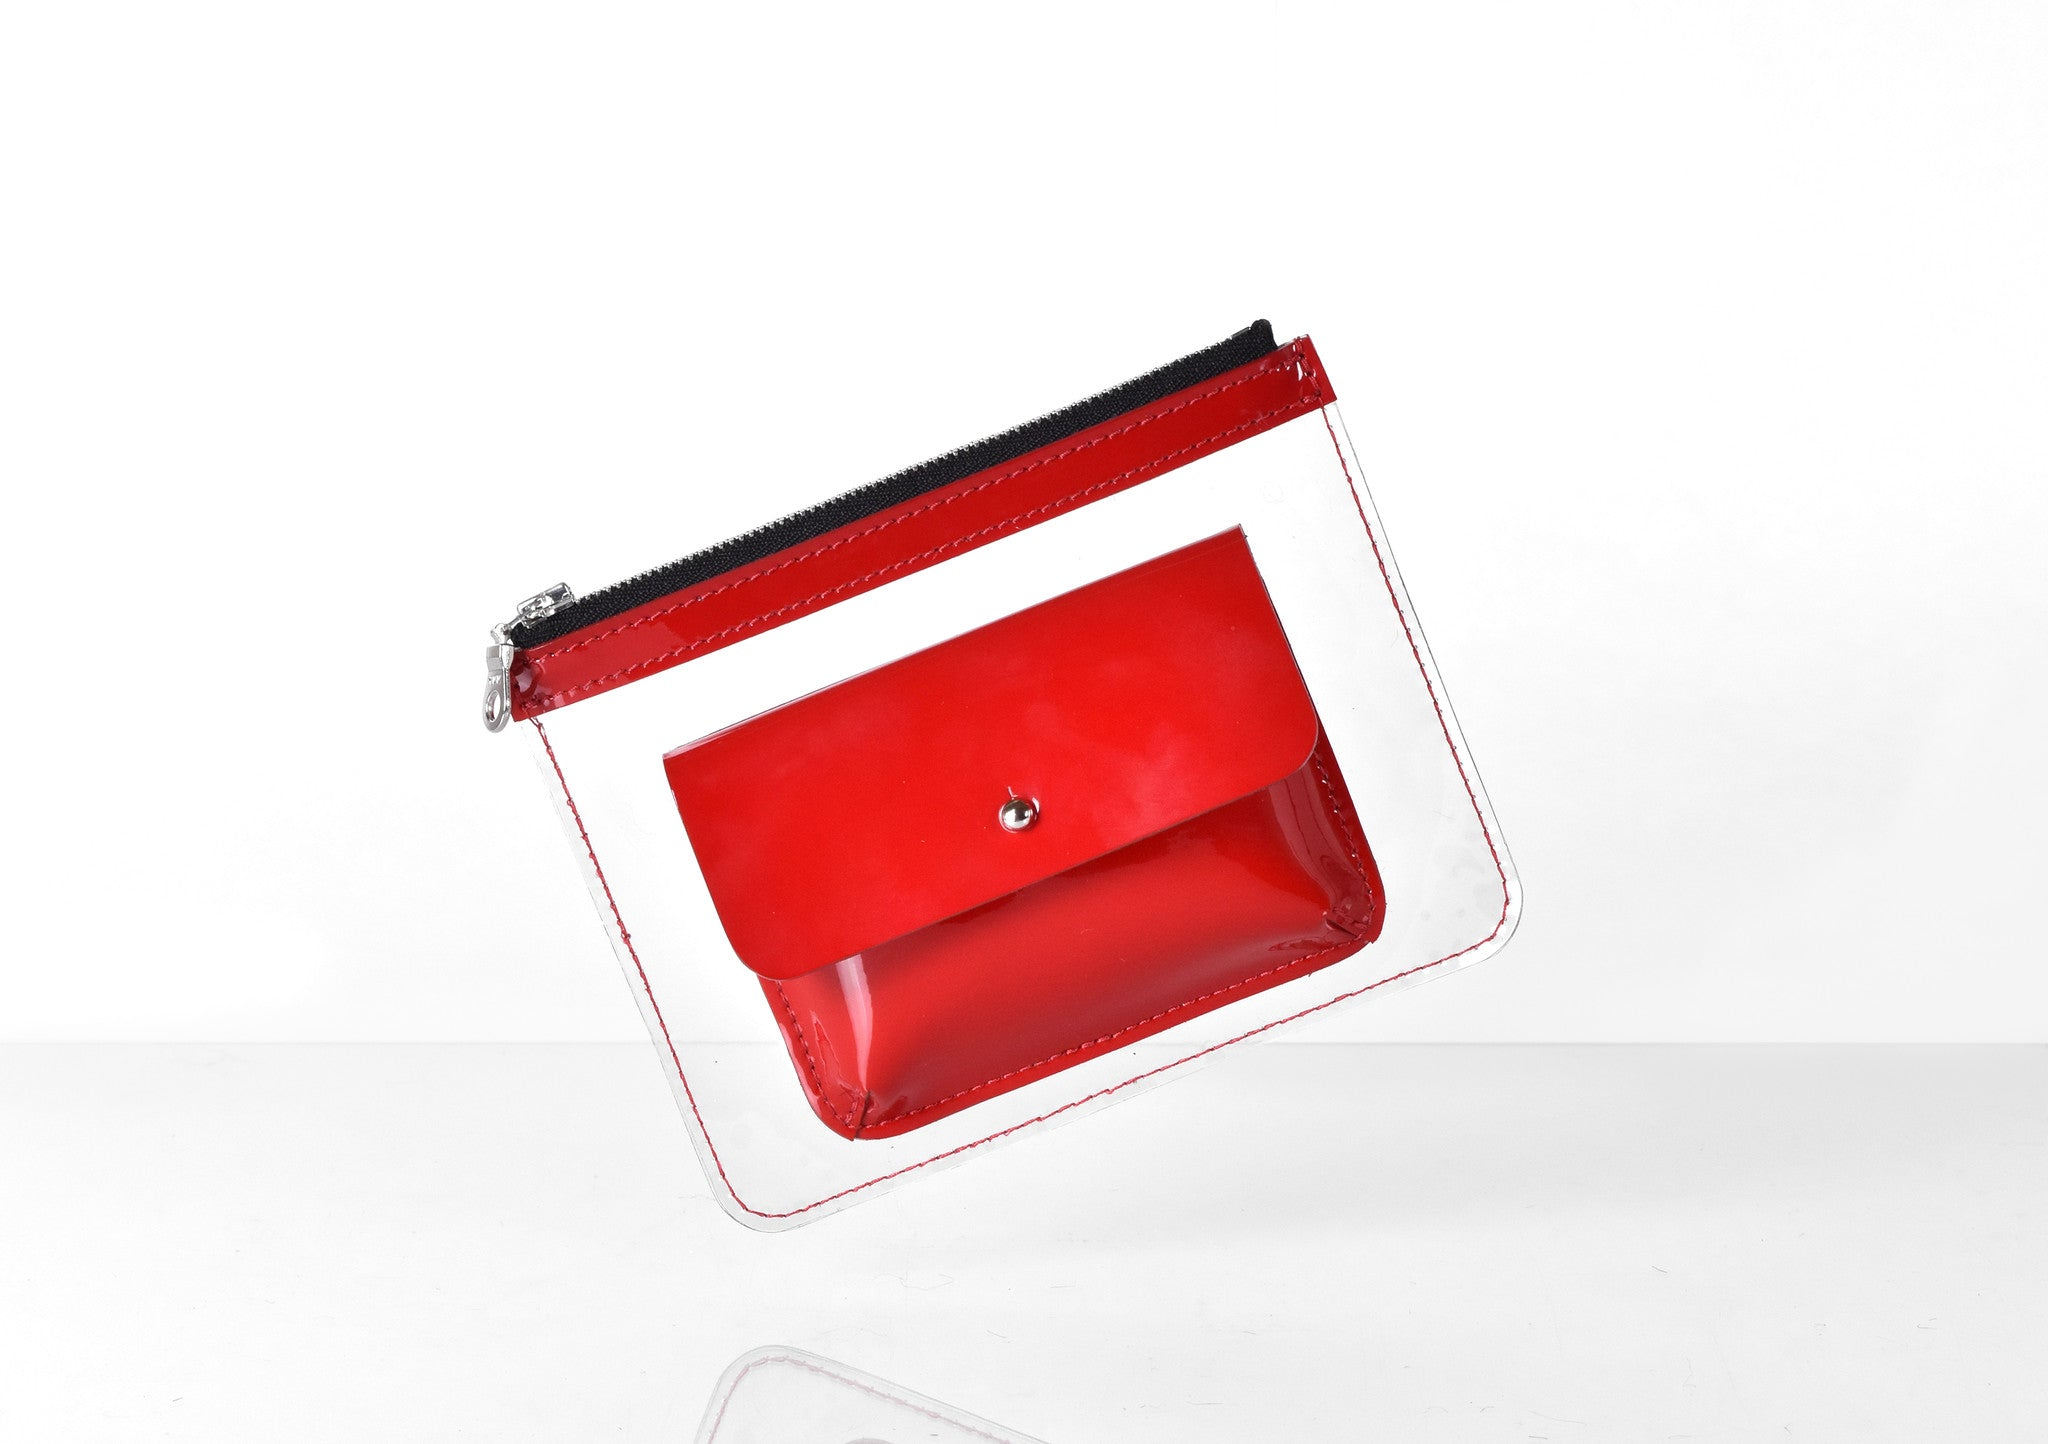 Barnett Wallet red patent leather